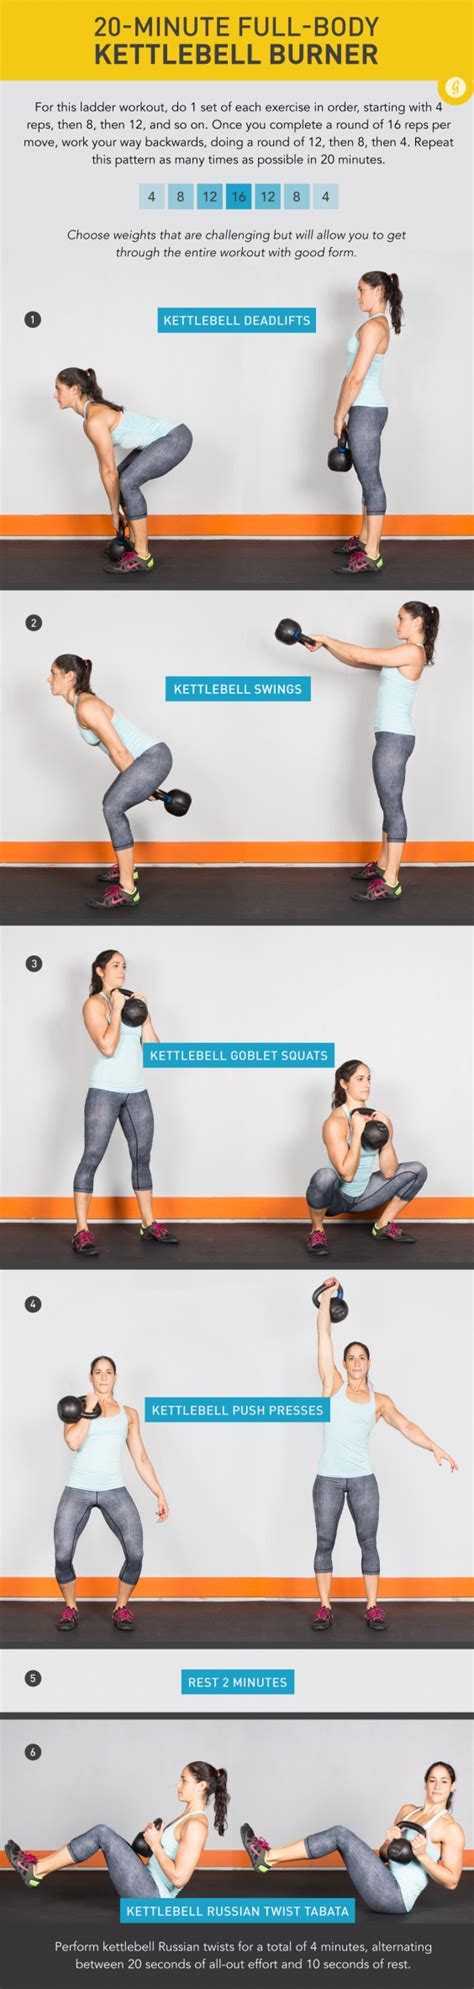 kettlebell workout minute body quick whole exercises workouts kettle bell greatist total min weight program ball strengthens routine burner fitness